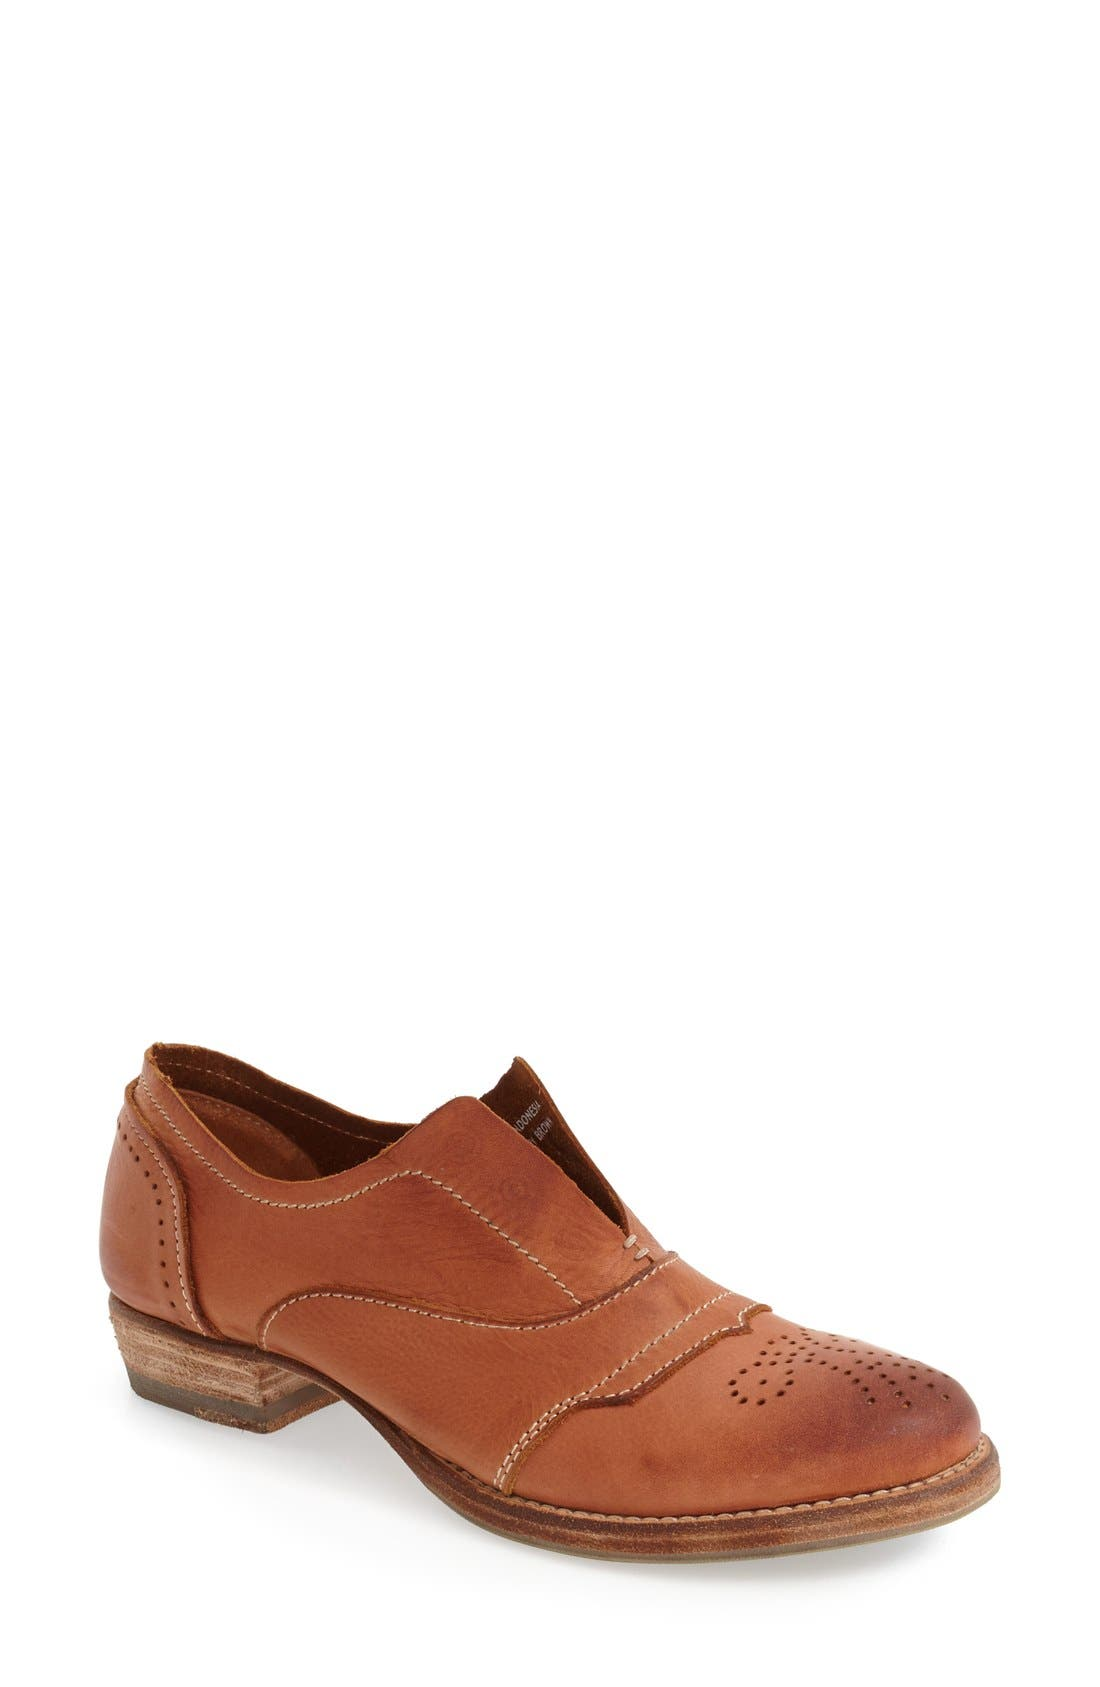 'HL55' Slip-On Oxford, Main, color, RUSTY BROWN LEATHER